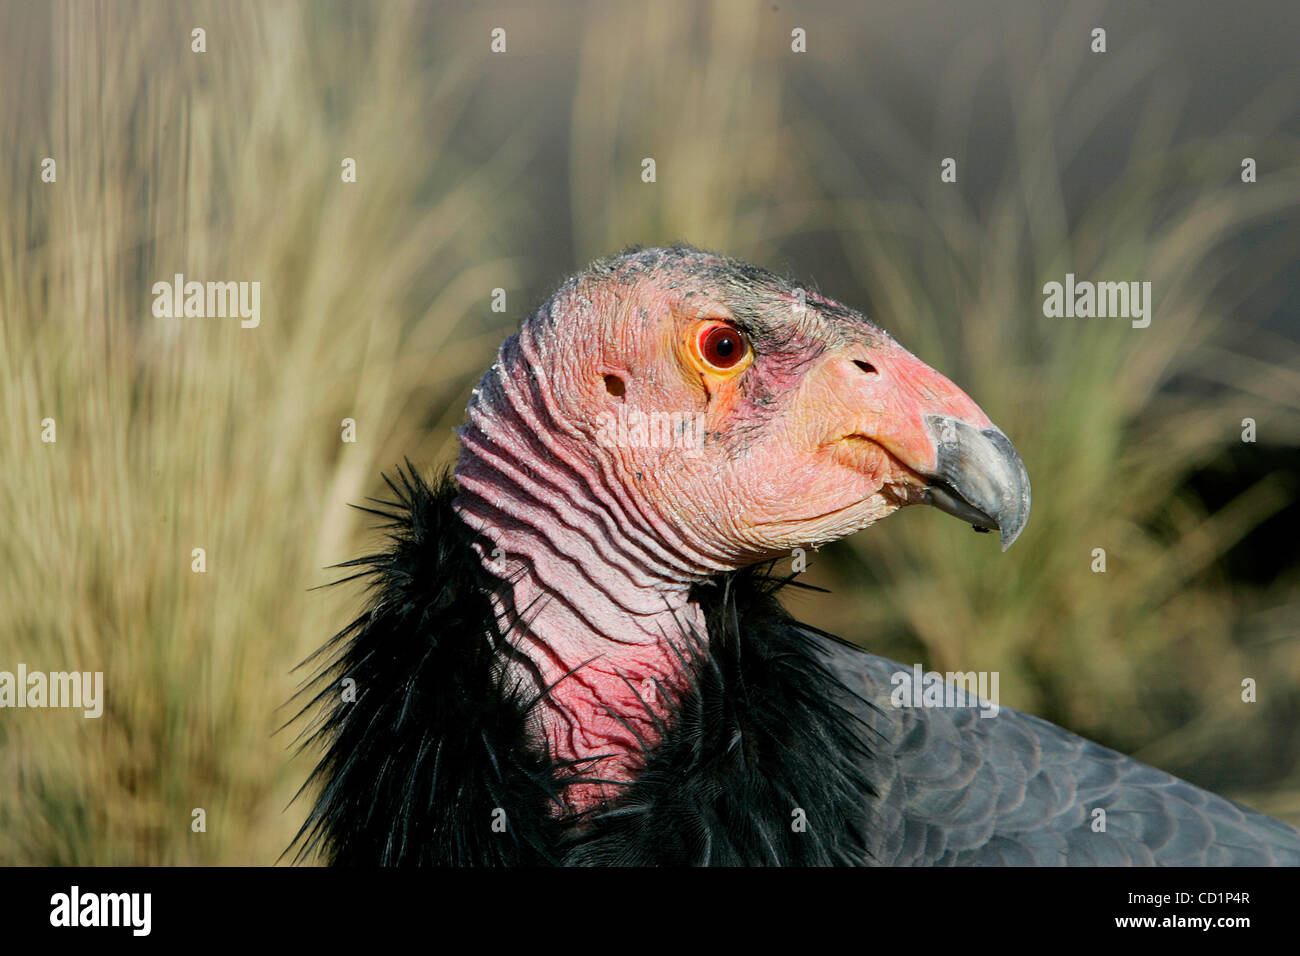 October 20th, 2008, San Diego, California, USA. Inside its new enclosure, a female California Condor named OJJA - Stock Image